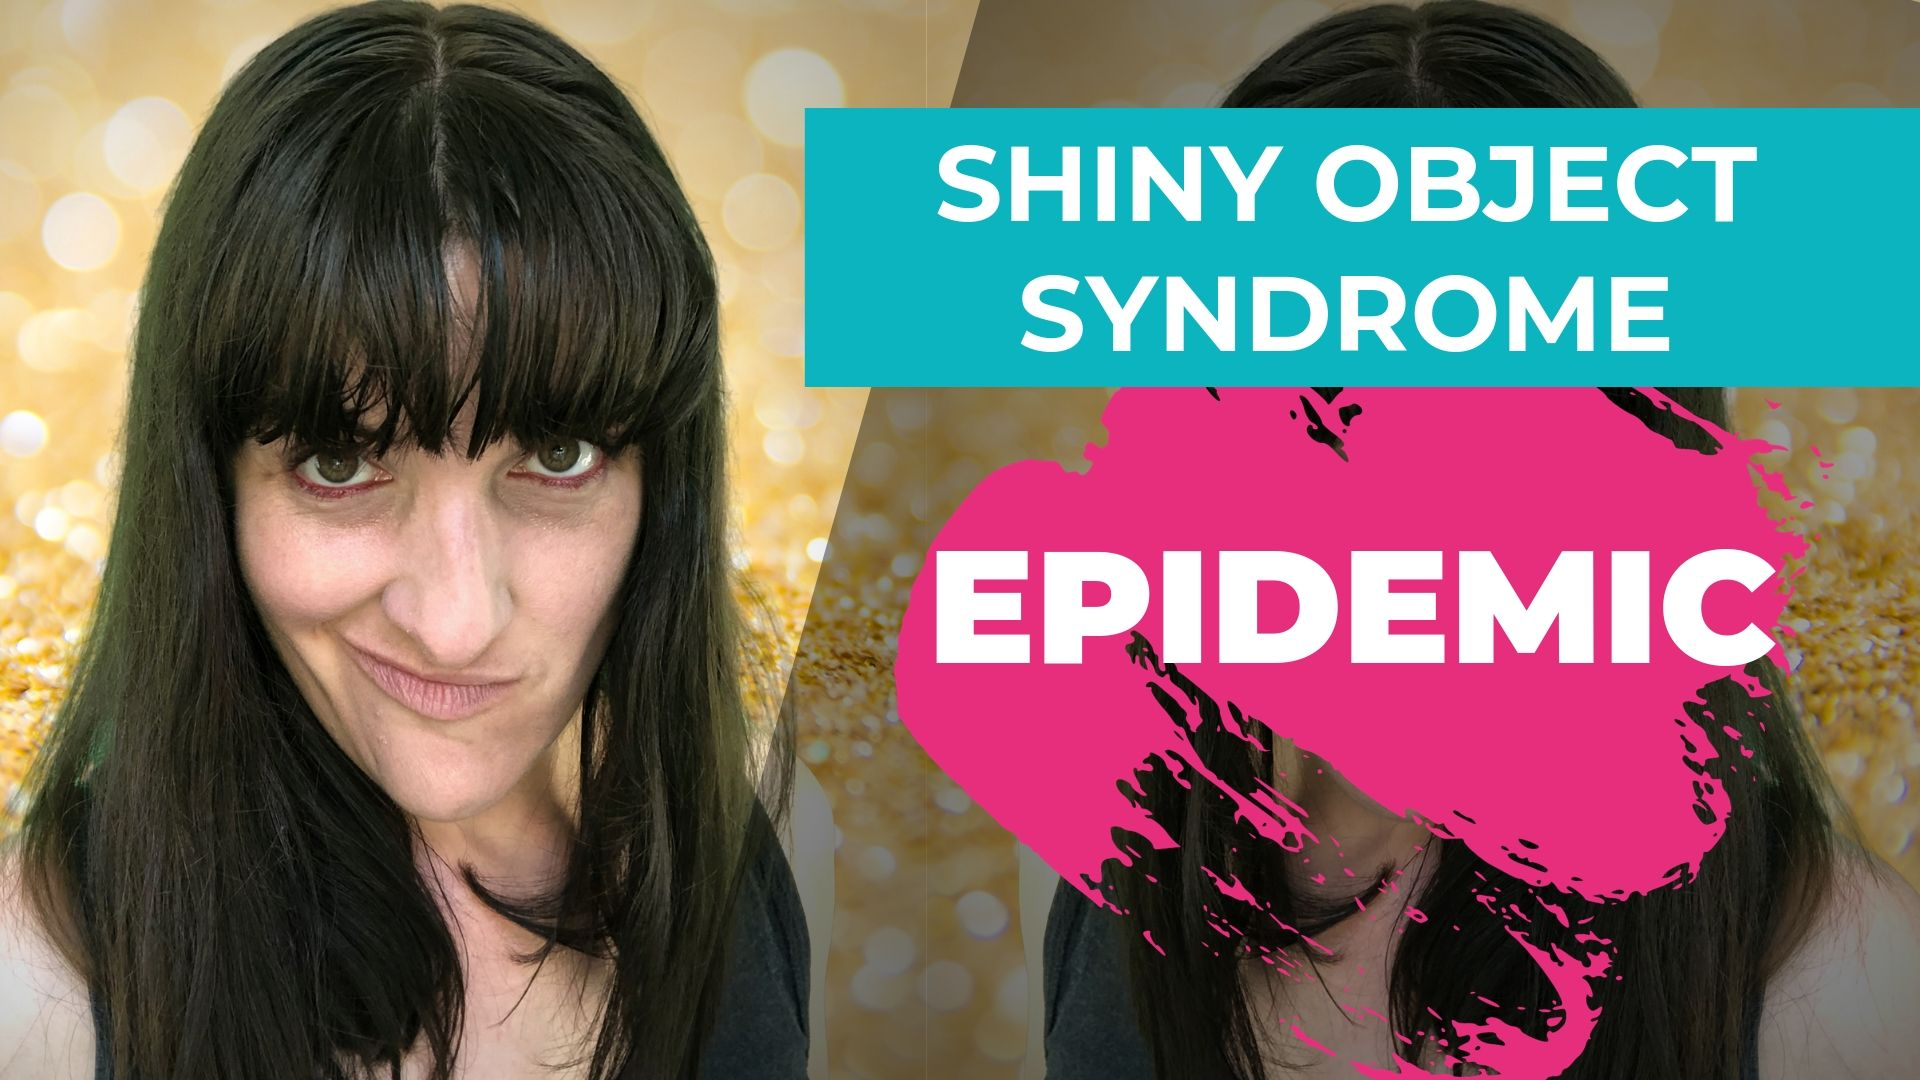 Tired looking person alongside title of video 'Shiny Object Syndrome Epidemic'